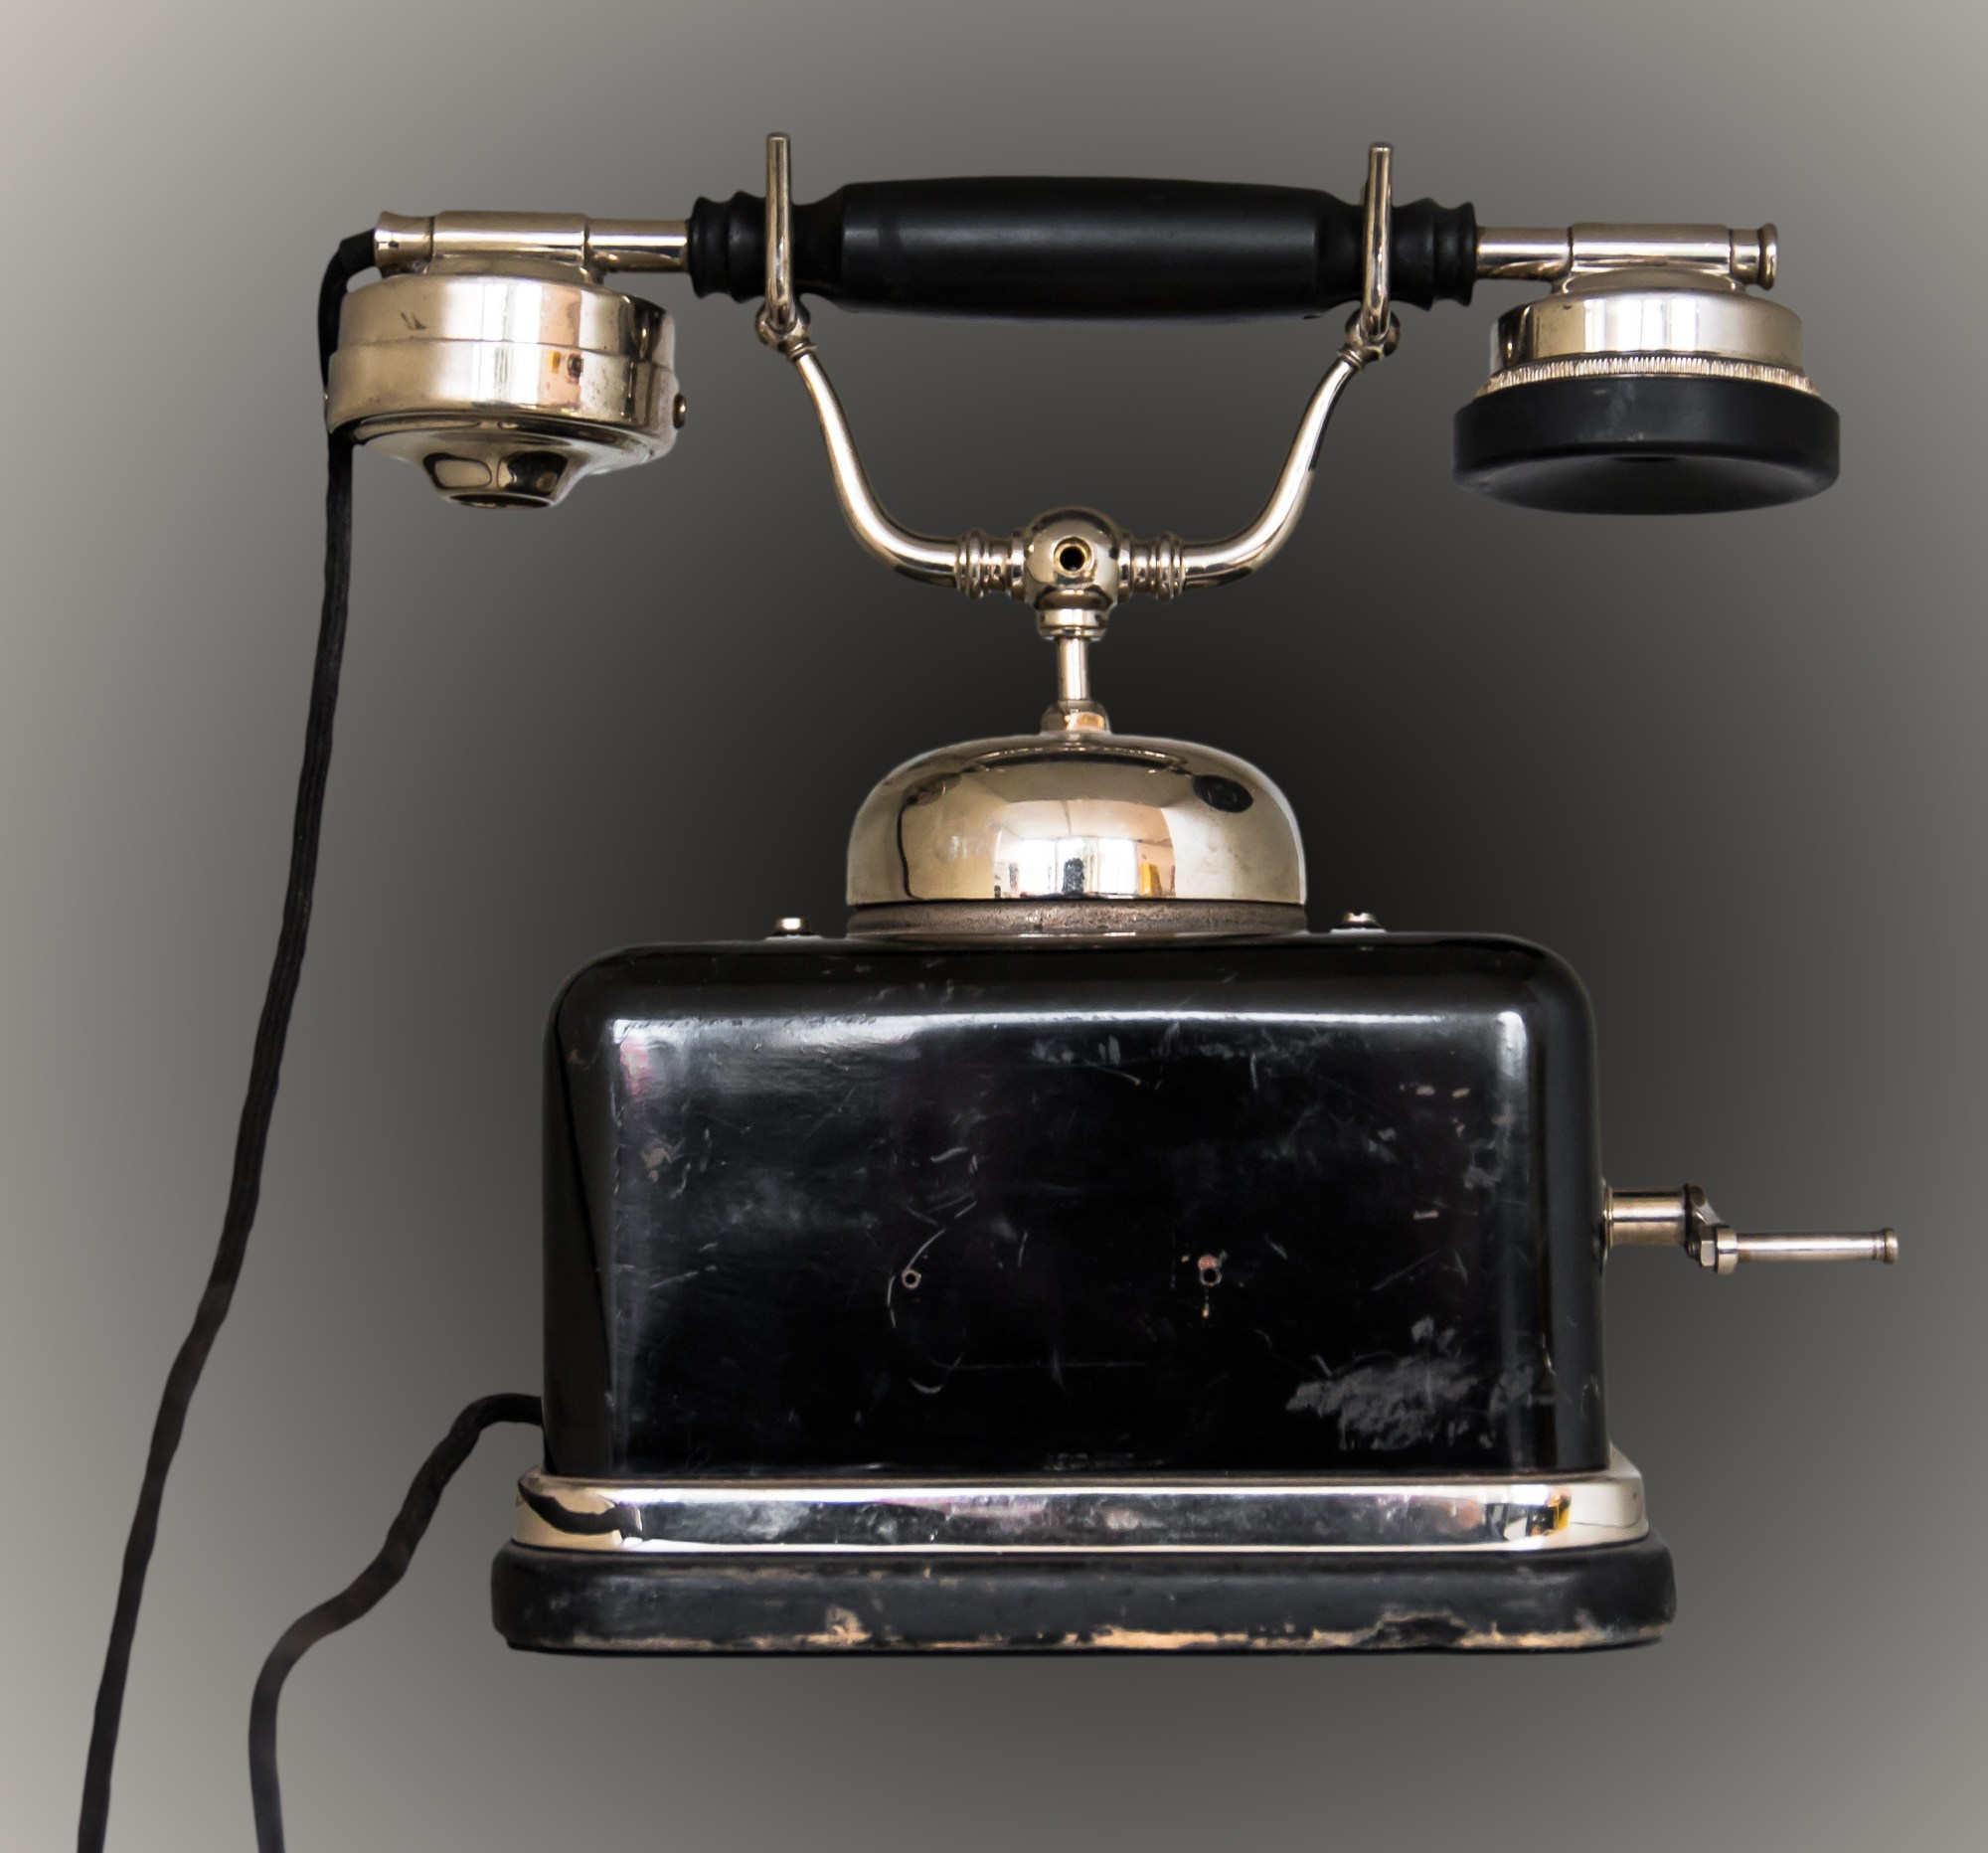 hight resolution of antique phone phone telephone old antique hq photo